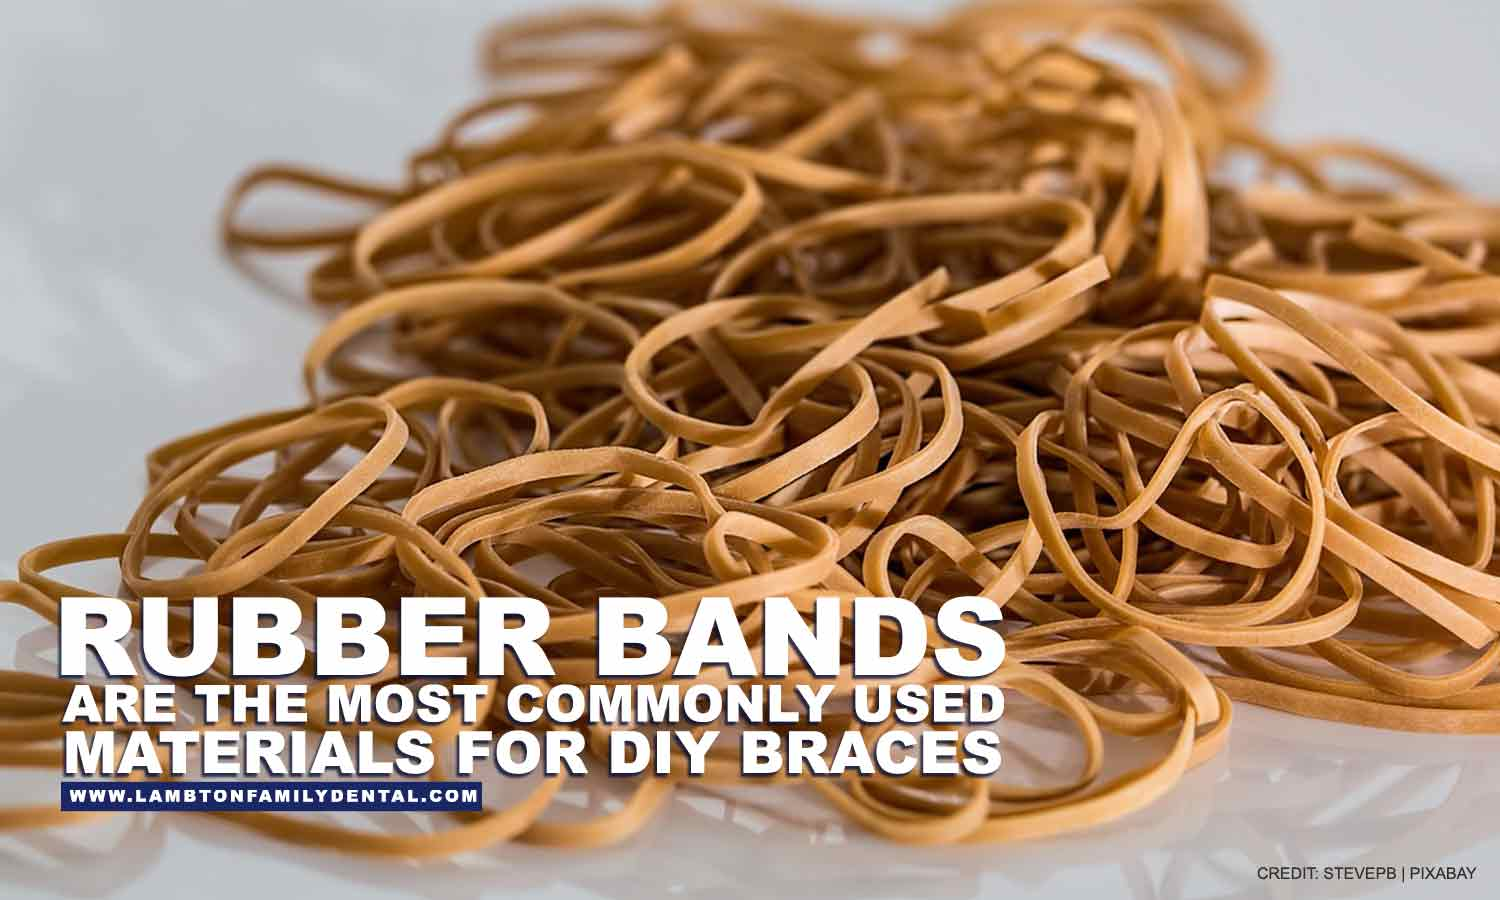 Rubber bands are the most commonly used materials for DIY braces